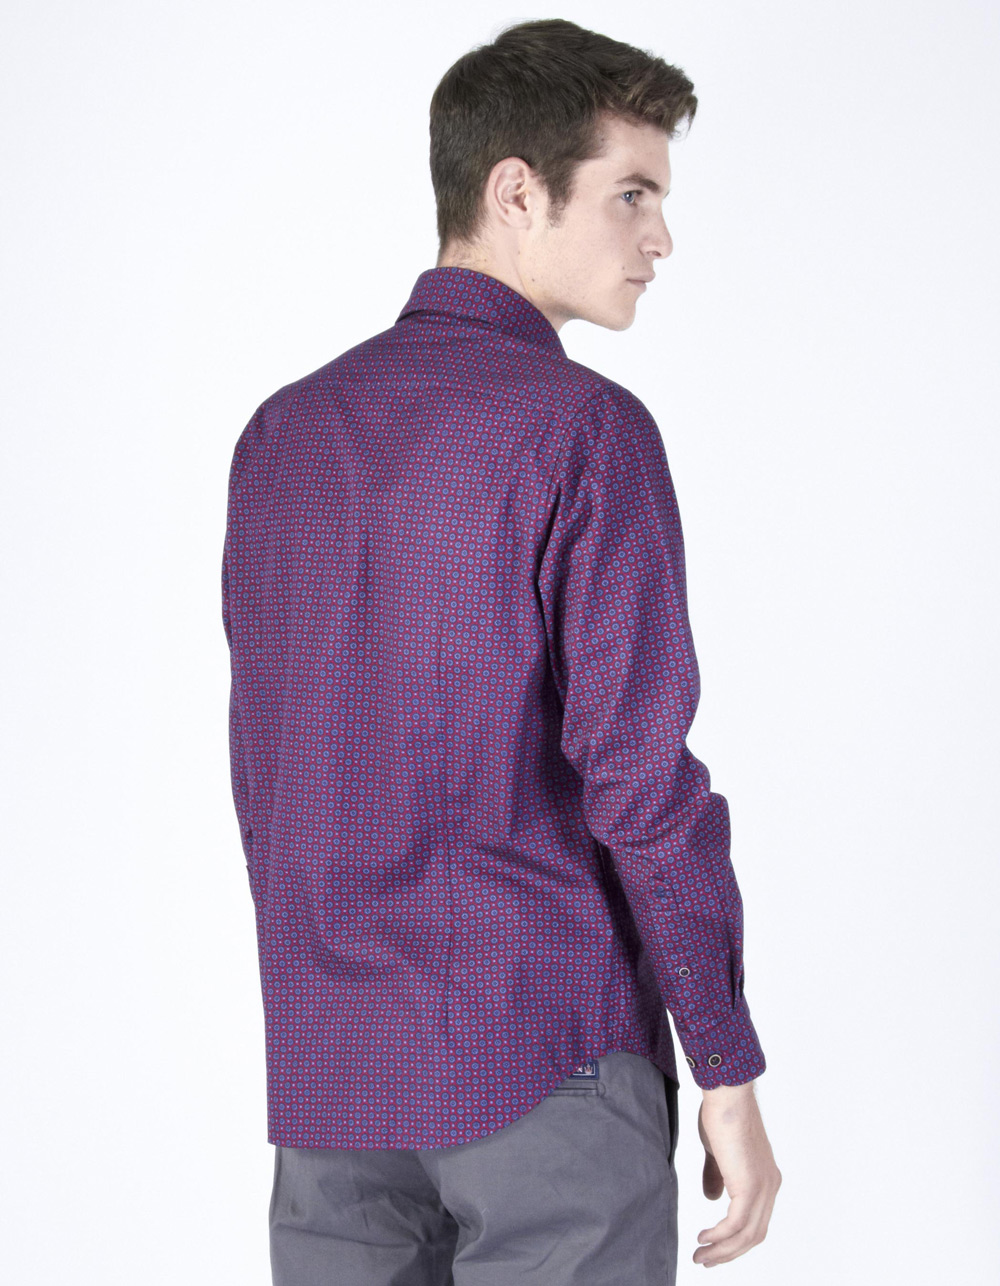 Maroon geometric shirt - Backside